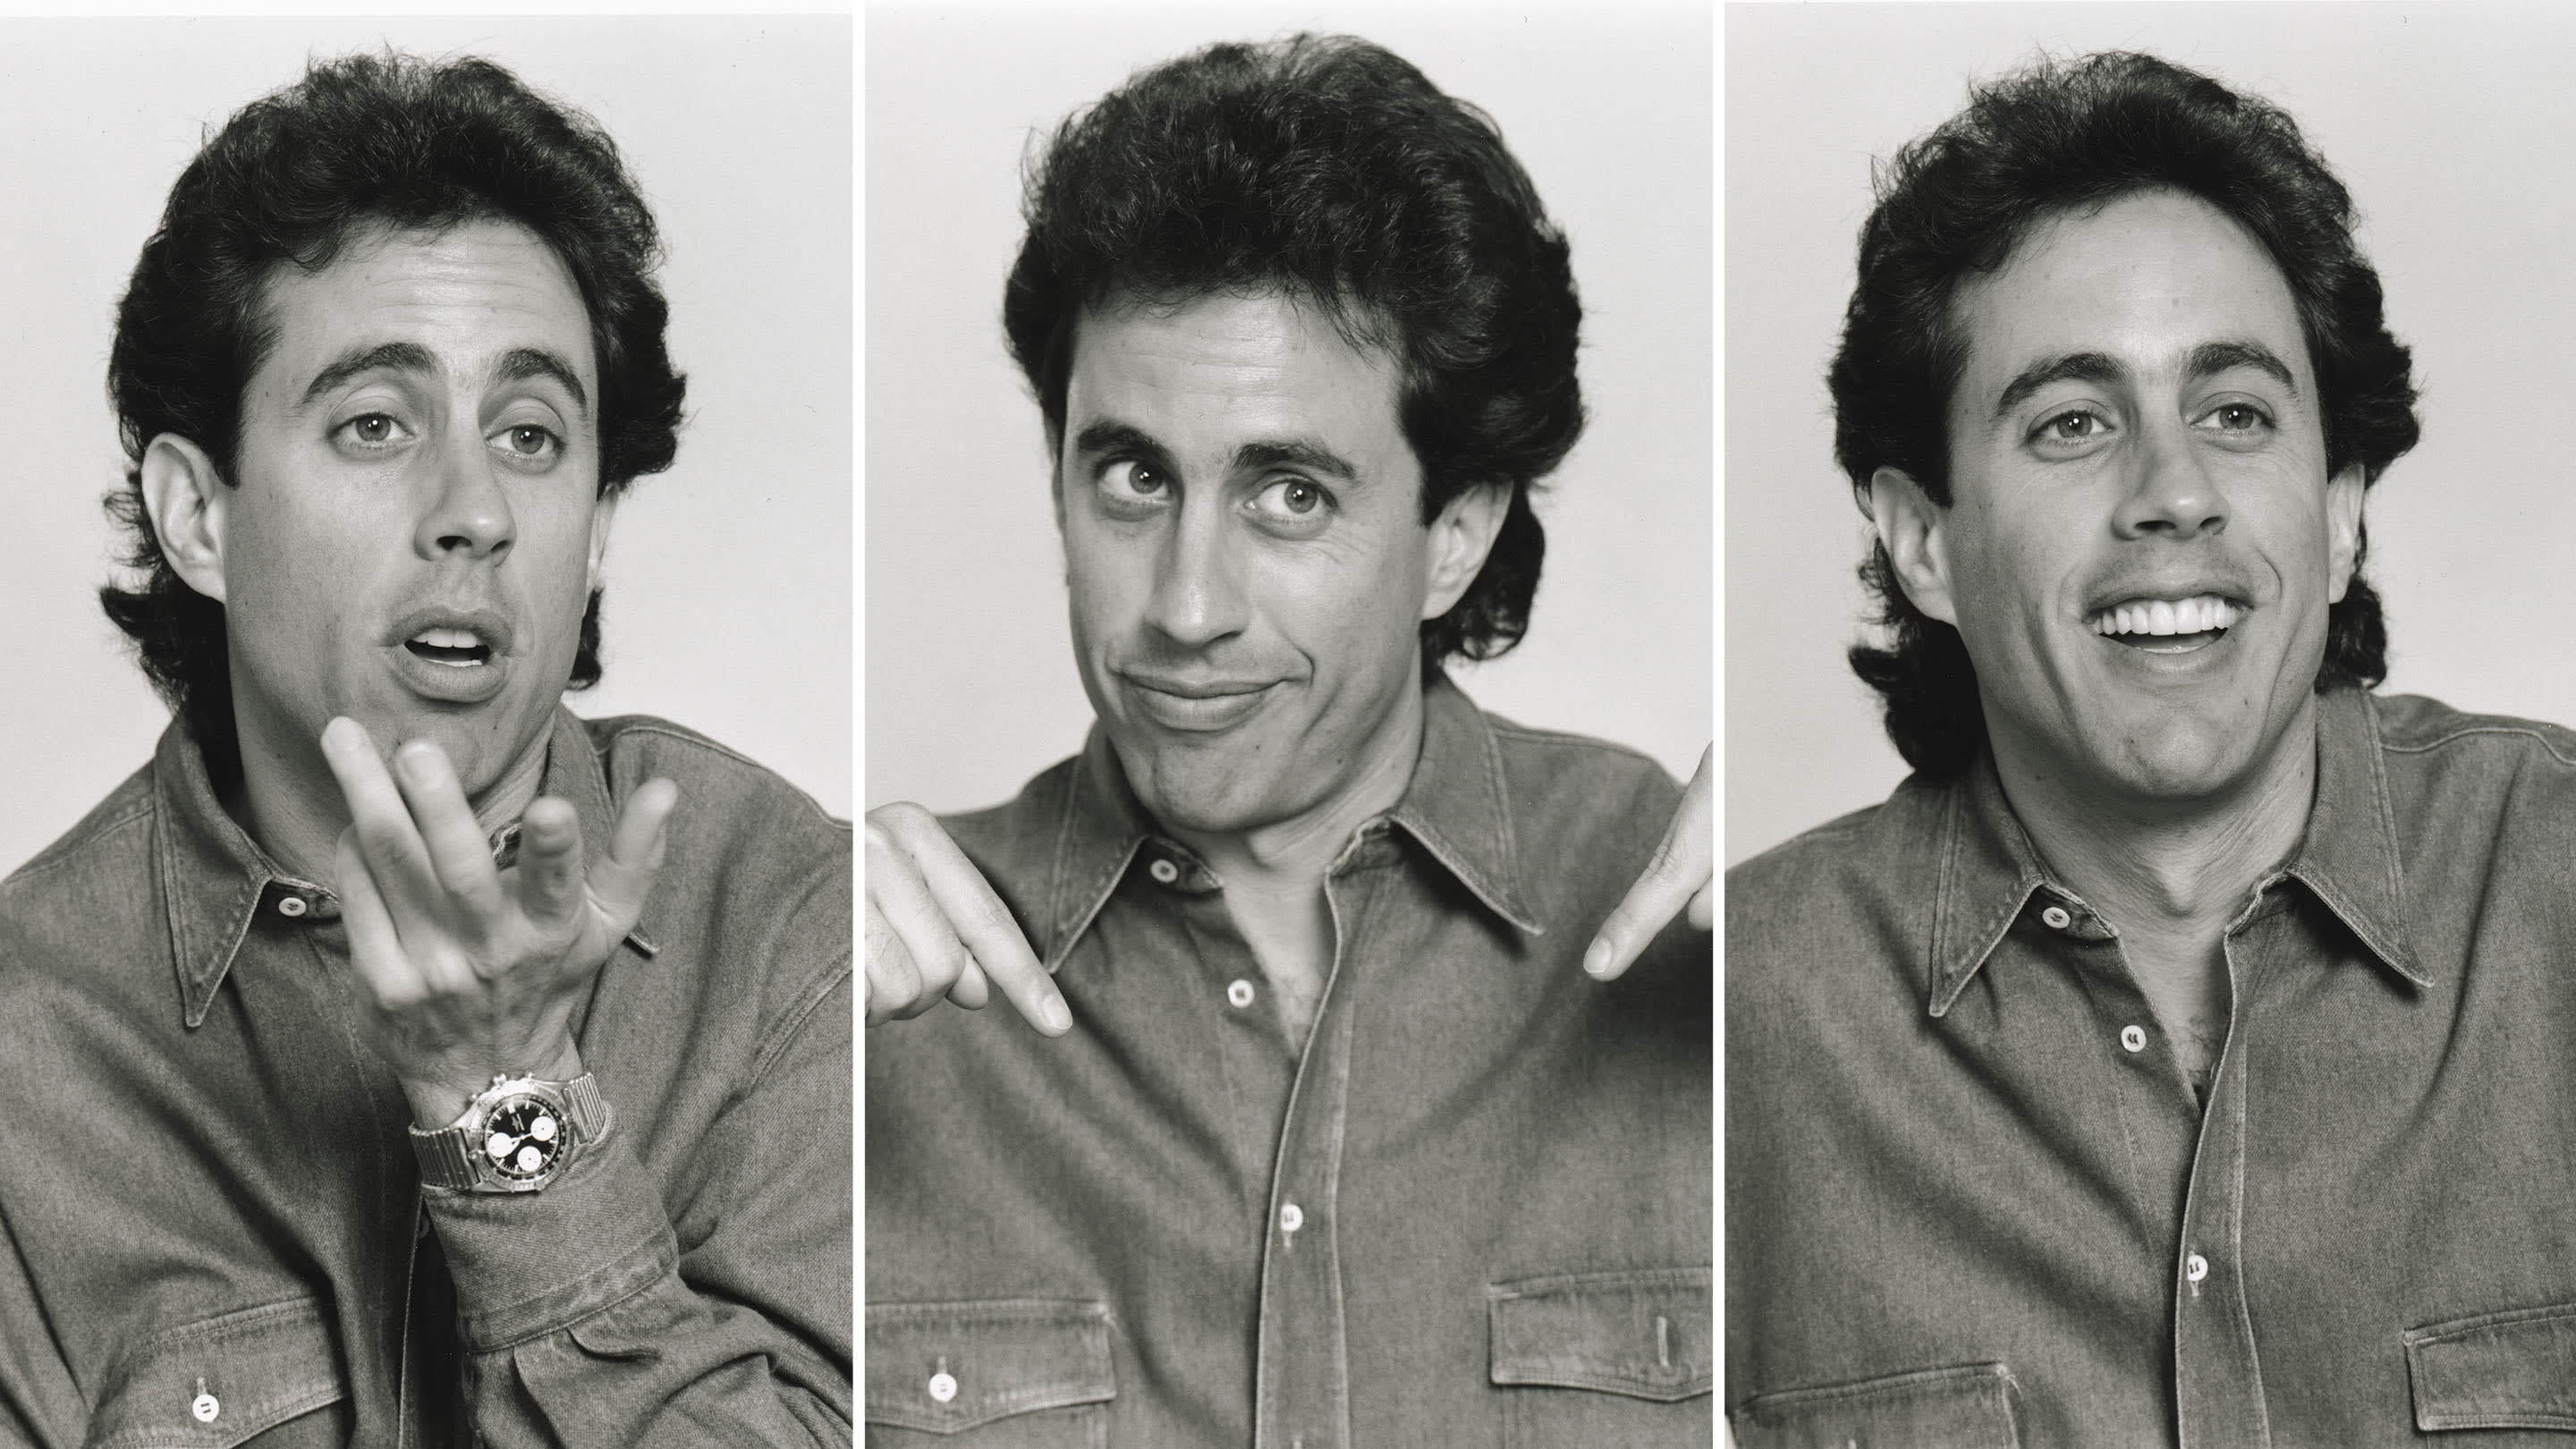 Marriage scandal seinfeld jerry Jerry Seinfeld